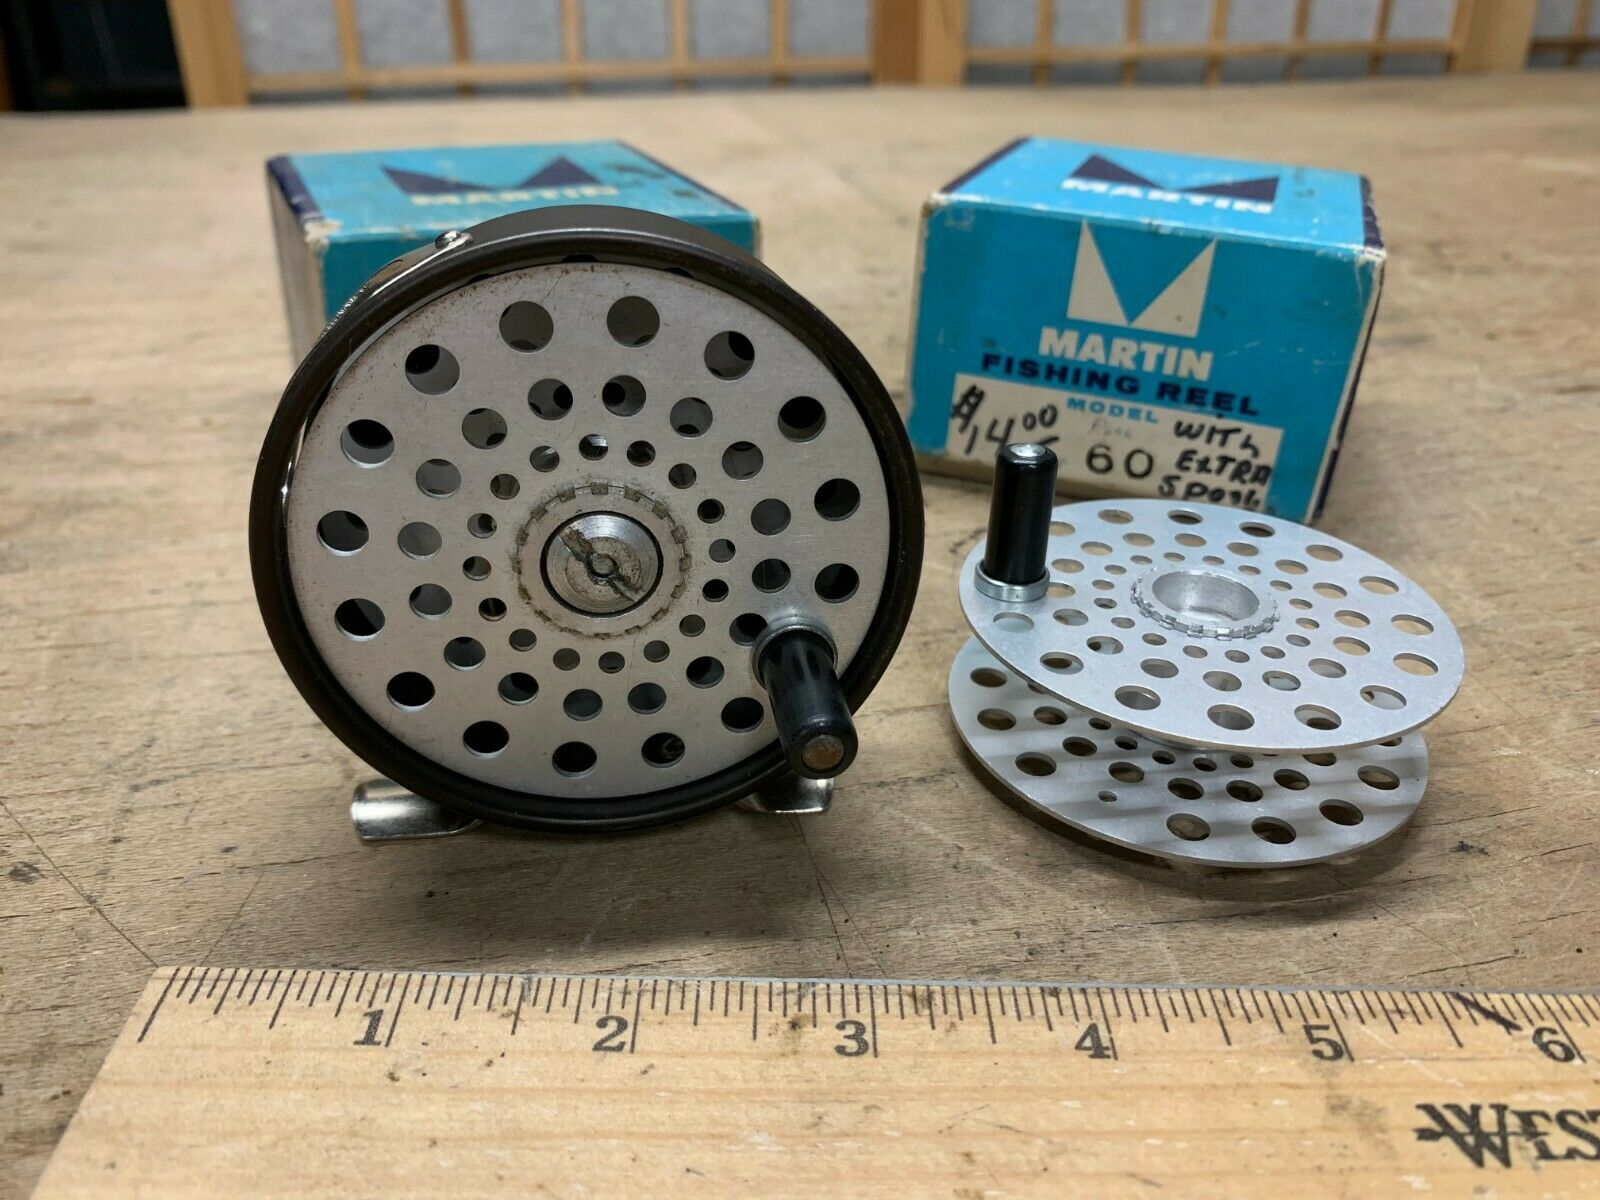 Vintage Martin Model 60 Fly Fishing Reel Collector Rare  Tuna Can w  EXTRA REEL   10 days return